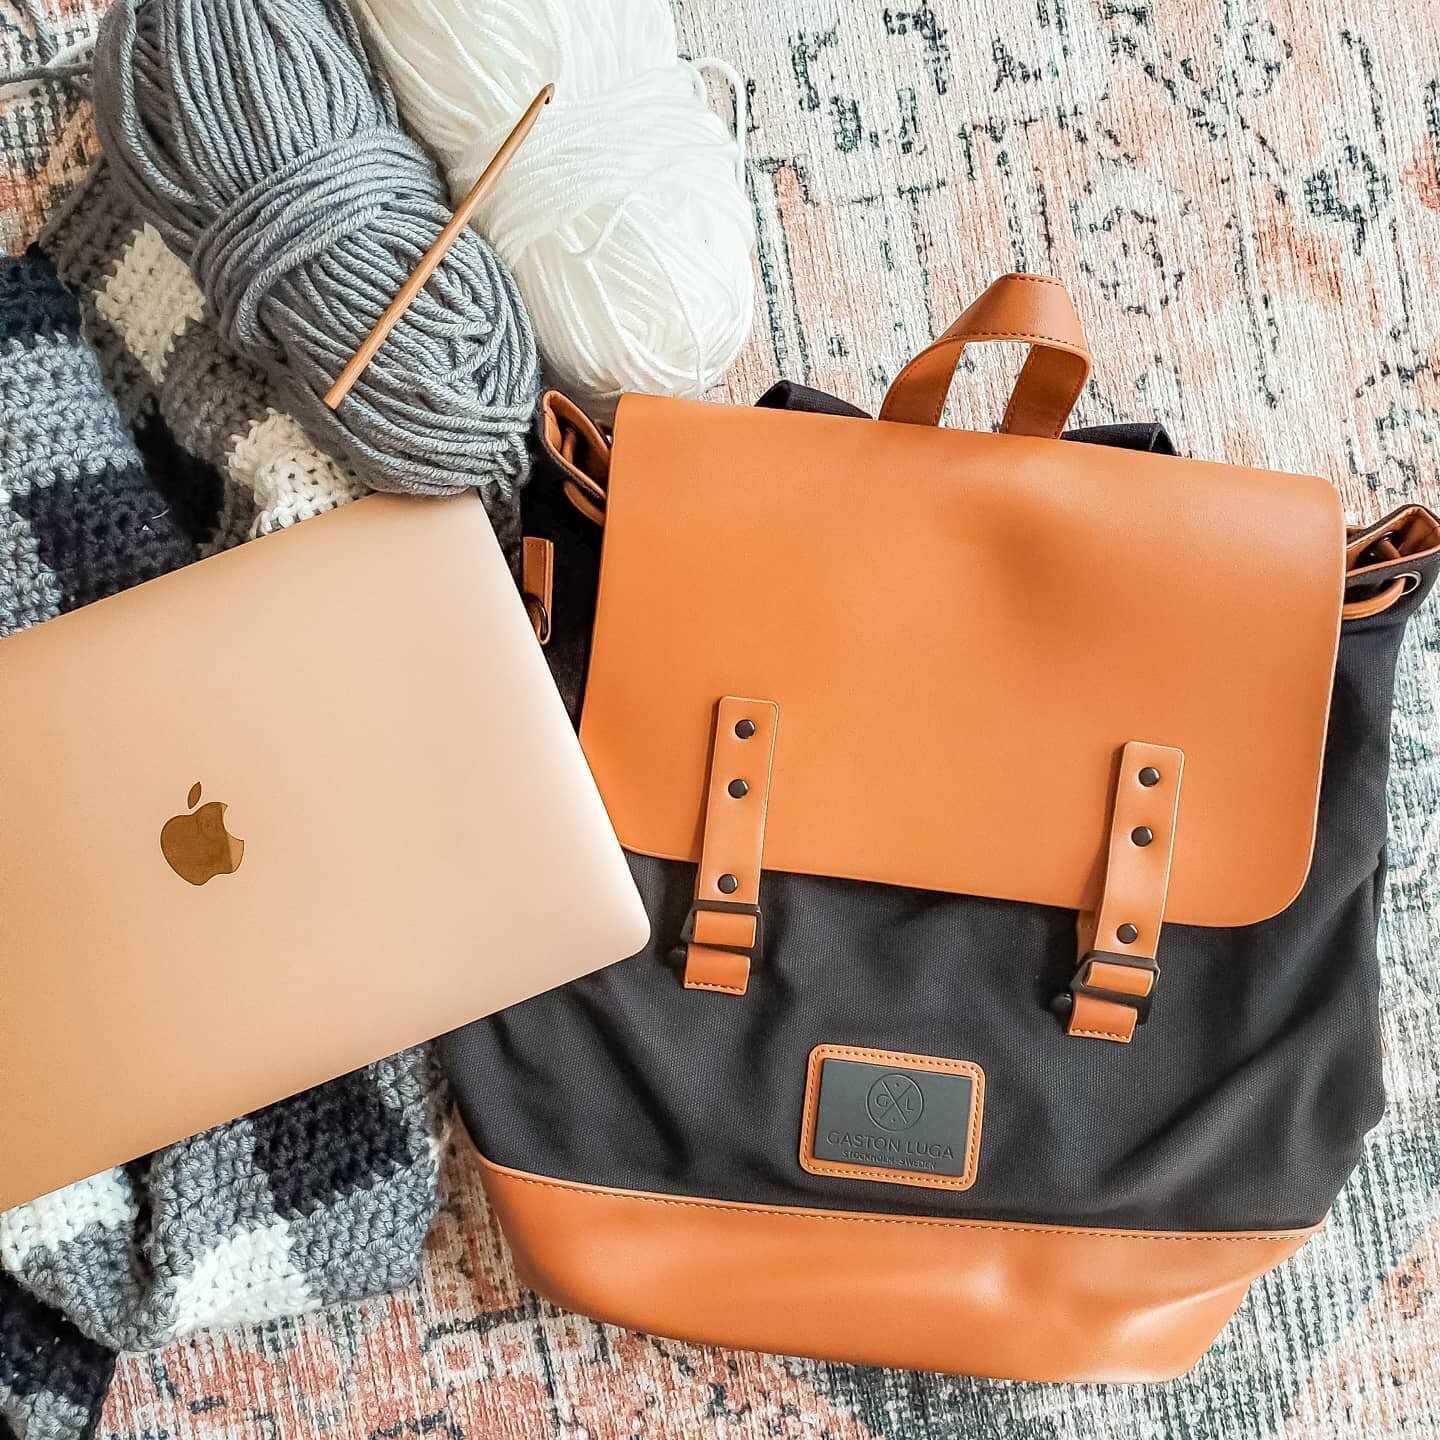 I am so excited for my new @gastonluga bag! ? I've been looking for a perfect, cute bag to fit my new MacBook, and this fits the bill perfectly! - See my stories for some of my favorite features of the bag. Use code CND_15 to get 15% off your purchase. And right now they're running a deal that you get a free Börs wallet with a purchase of a backpack. - Do you see that Buffalo Plaid Crochet WIP I'm working on? I've been slowly working on it when I can with a newborn. It is going to be a Christmas Tree Skirt, but not your typical one. I'm excited to eventually finish it, so I can show you my fun twist on a traditional skirt. ? - So do you think I'm crazy for working on a crochet Christmas pattern in September? I may be, but I love designing Christmas Tree Skirts. And life with a newborn is slow-moving, so I'll be lucky if I can finish this in time for the season. ?♀️ - #anywherewithGL #GastonLuga #farmemian #crochetboho #bohocrochet #macramevibes #macrame #beginnercrochetpattern #homedecor #crochethomedecor #beginnercrochet #bohoinspiration #bohostyle #minimalismcrochet #crochethome #crochetbohotheme #cozynooksdesigns #macramedecor #crochetdecor #crochetdecorpattern #easycrochet #bohome #bohodecor #craftsposure #etsysuccess #crochetdecor